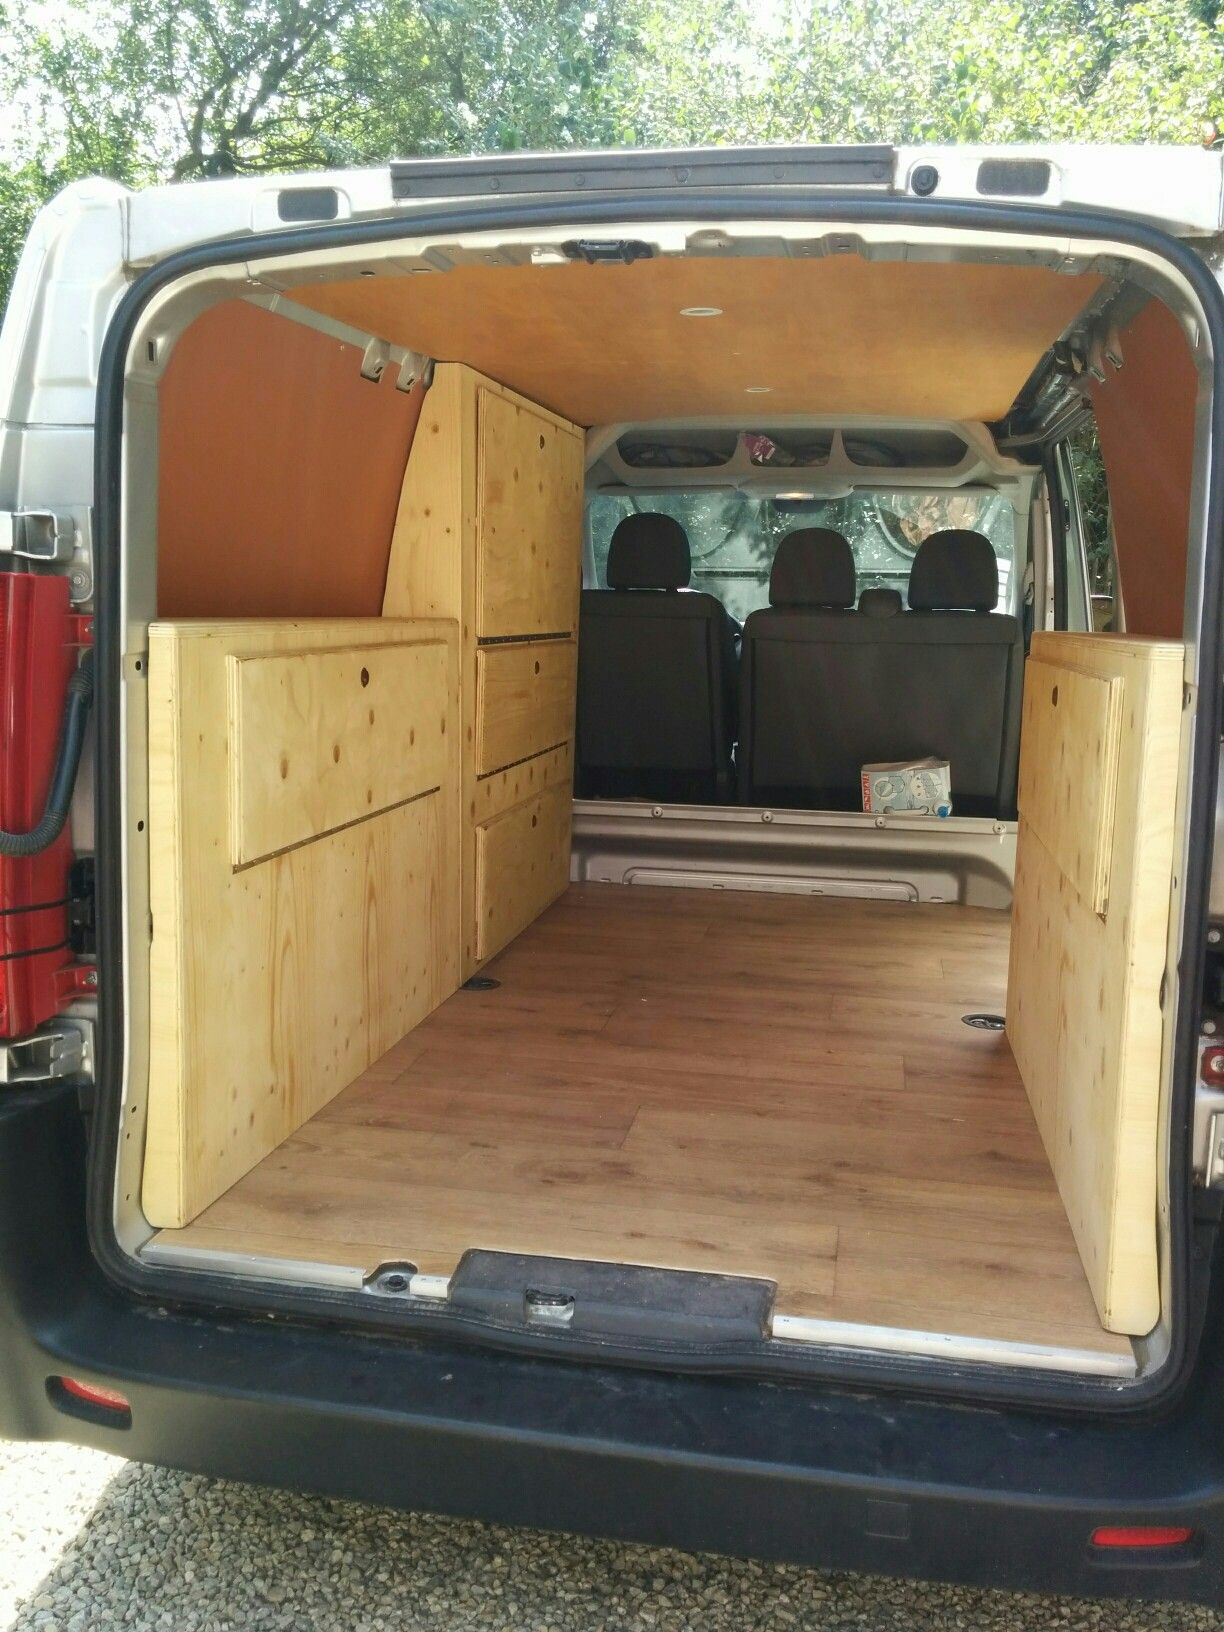 jumpy camper vanlife camper van conversion diy van. Black Bedroom Furniture Sets. Home Design Ideas